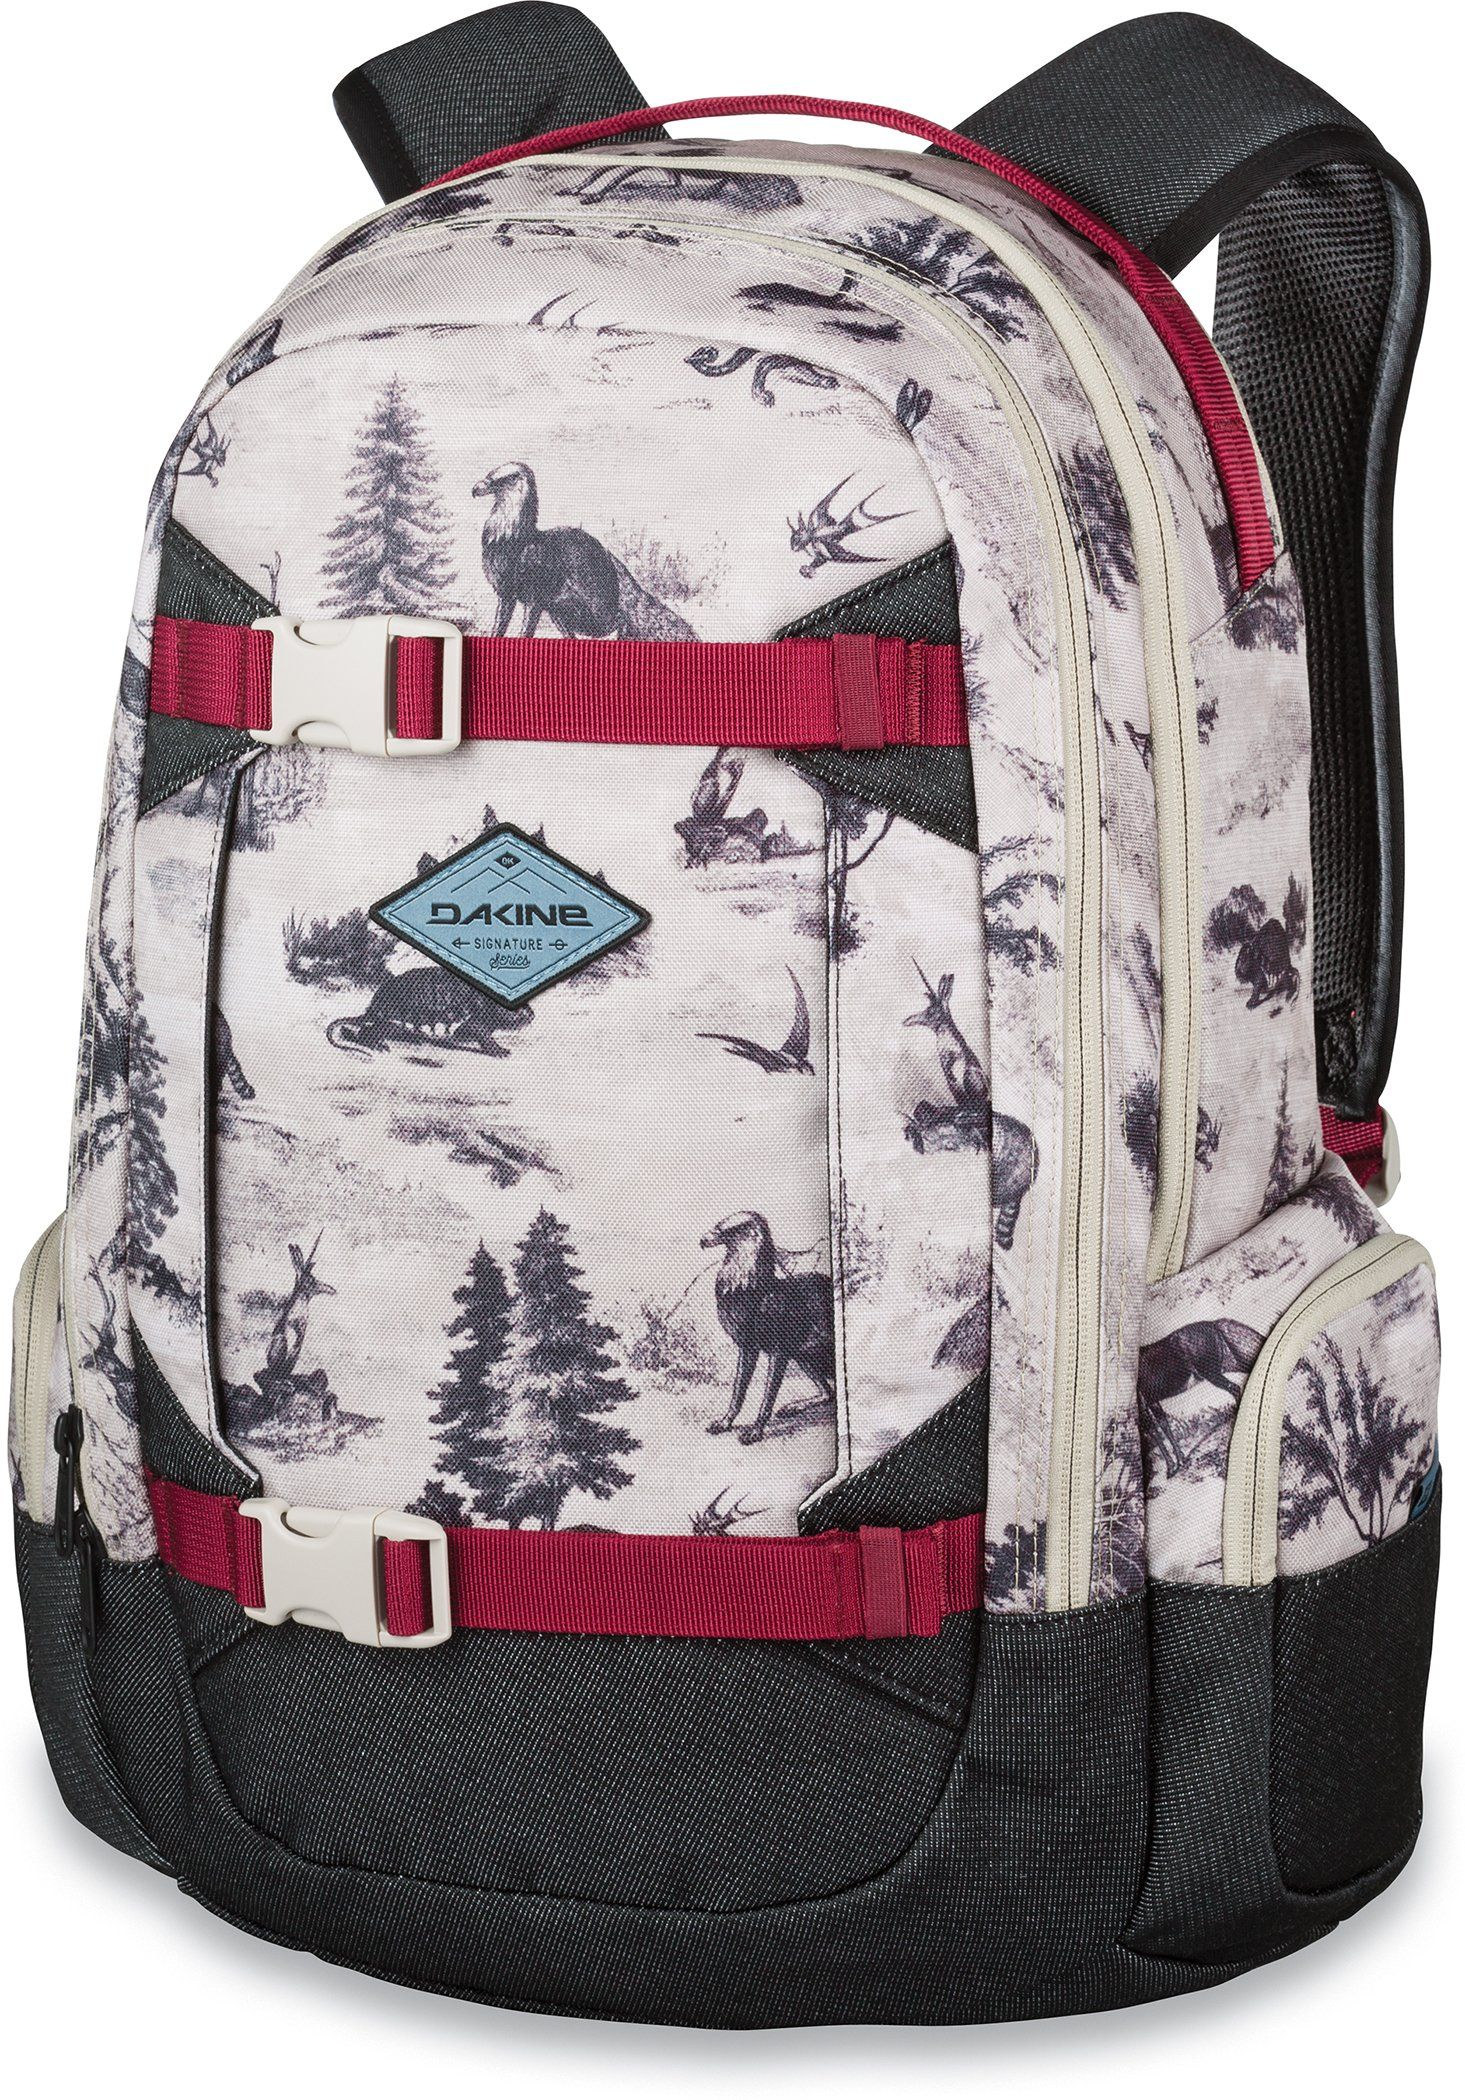 Dakine Backpacks - Dakine Team Mission 25L Backpack - Annie Boulanger.  Women s specific fit. Vertical board carry straps. Fits most 15